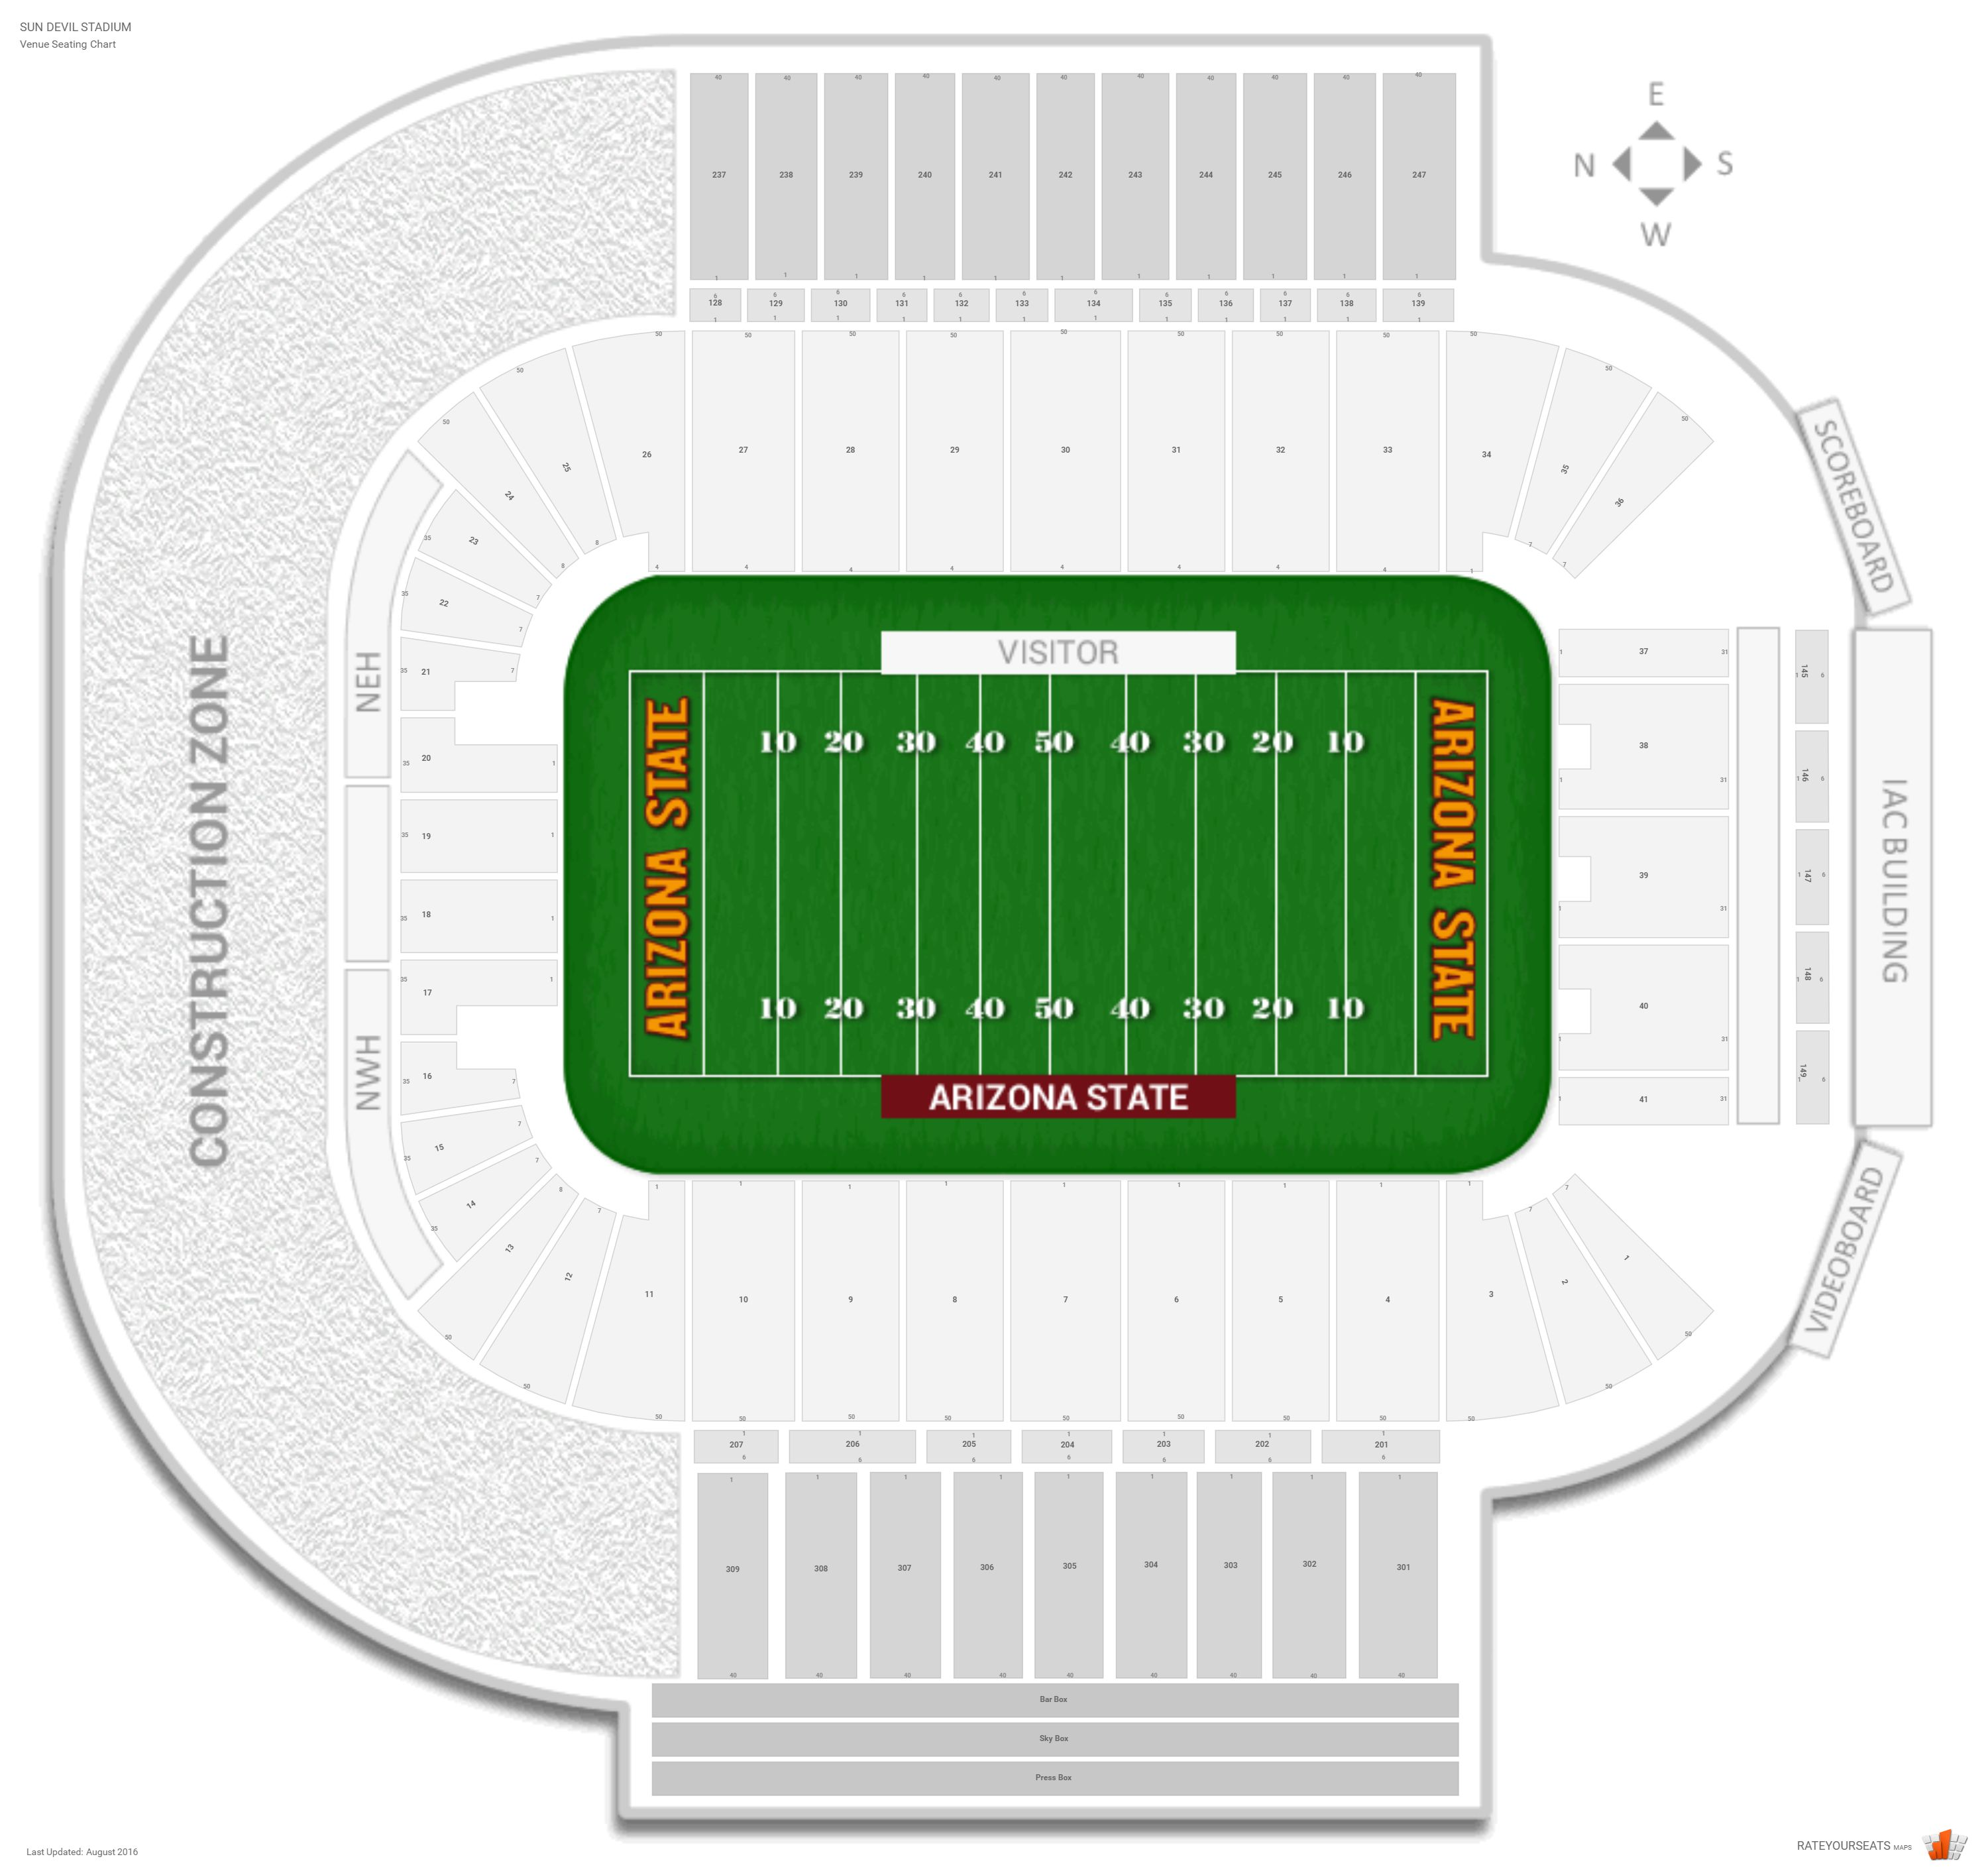 Sun devil stadium arizona state seating guide rateyourseats com